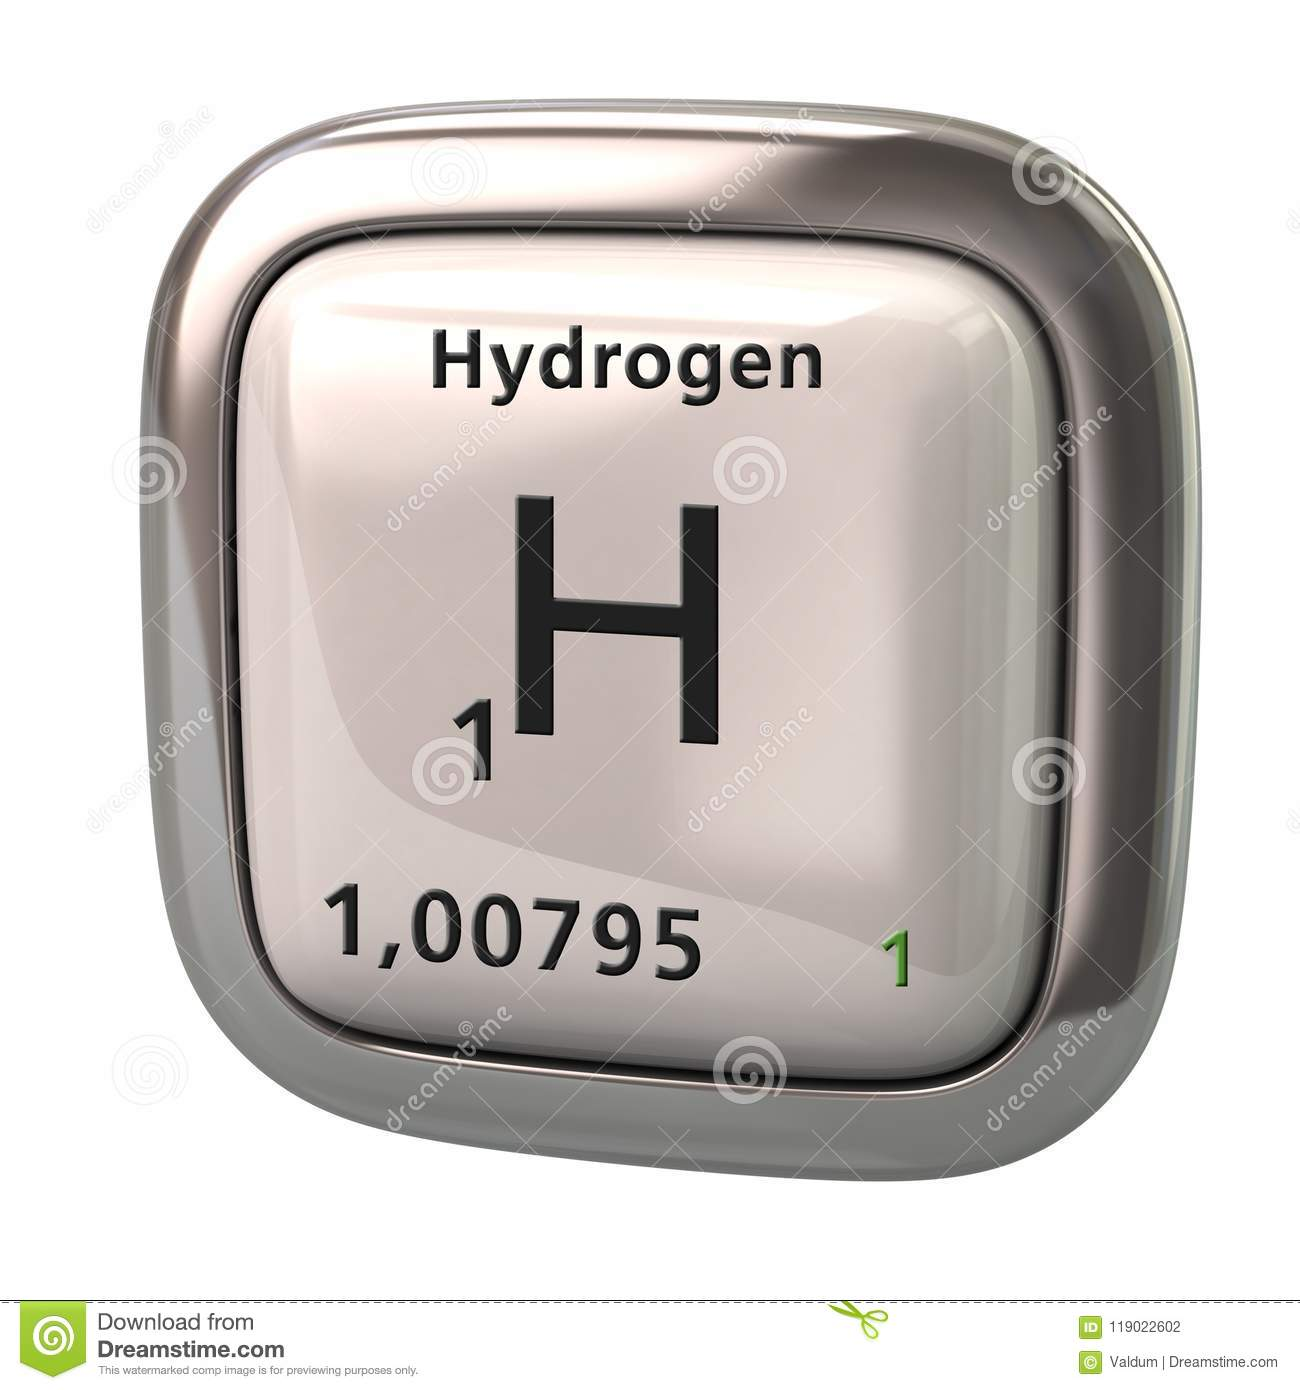 Hydrogen H Chemical Element From The Periodic Table Stock